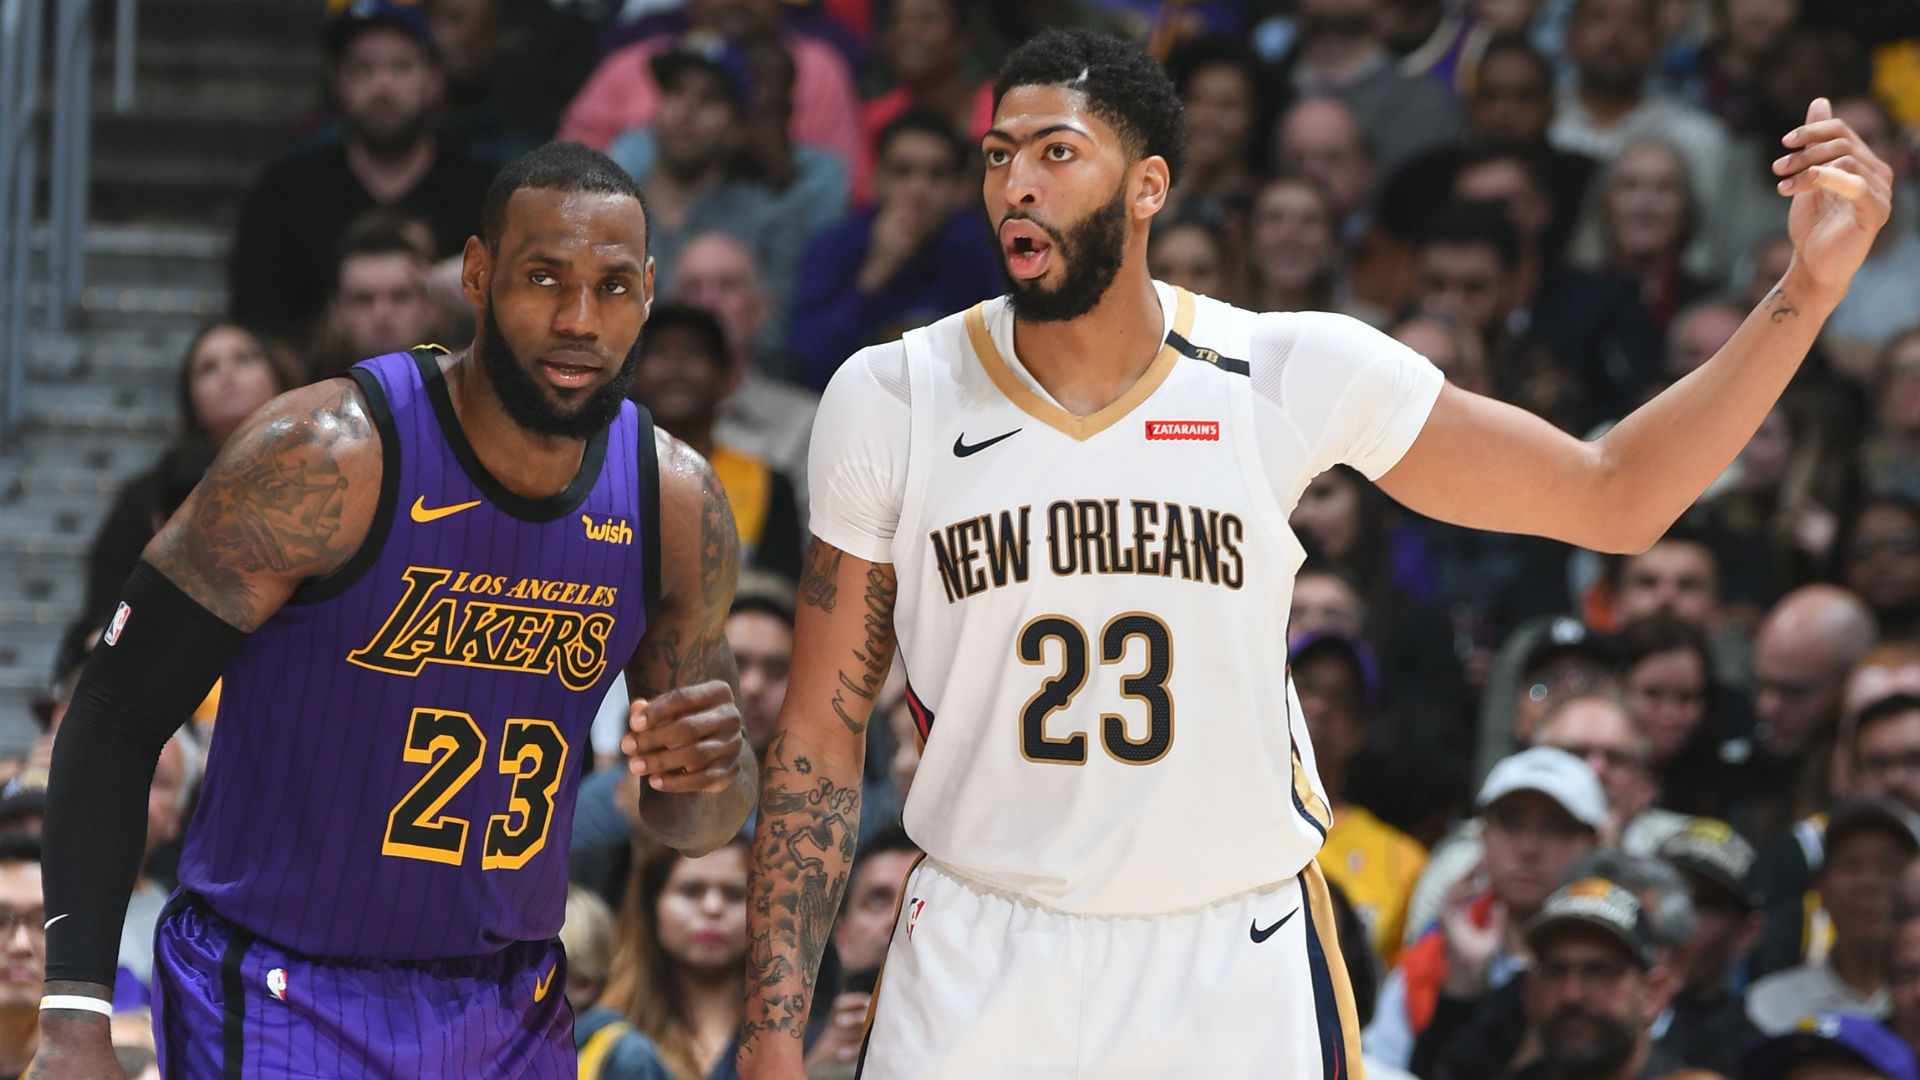 NBA players react to the New Orleans Pelicans reportedly trading Anthony Davis to the Los Angeles Lakers